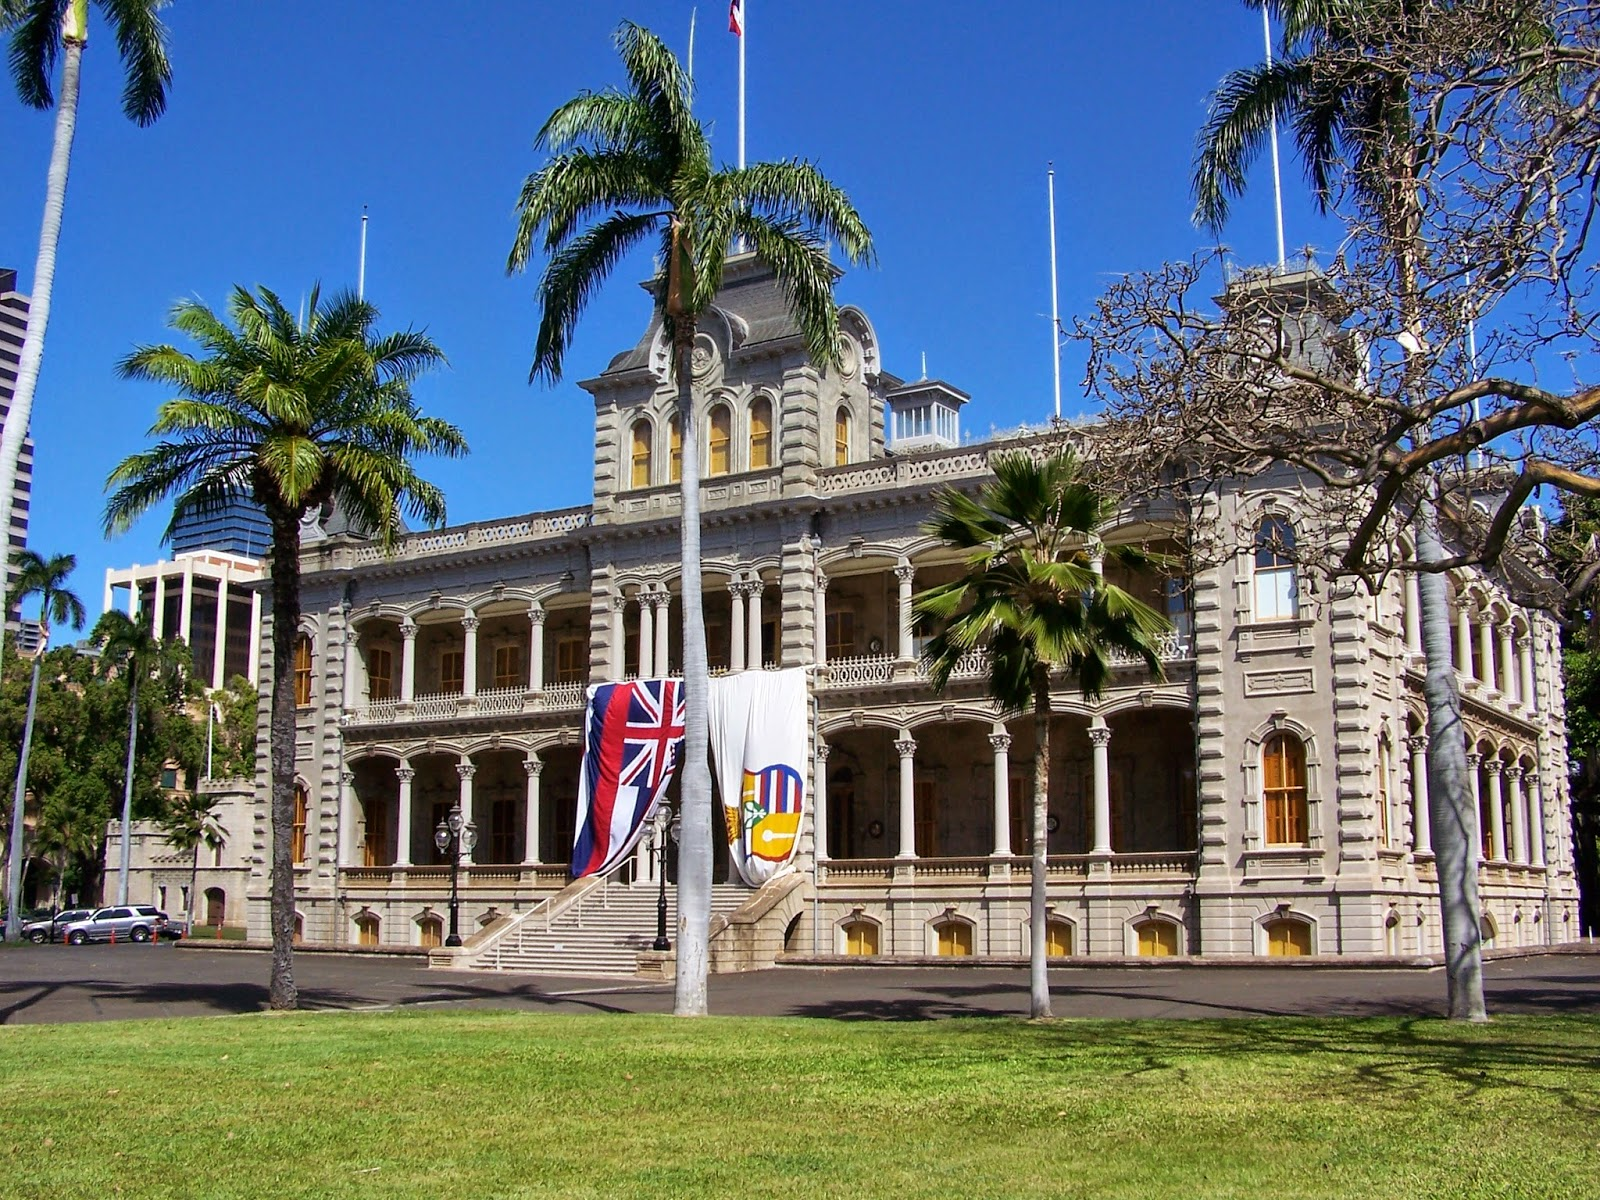 Iolani Palace with flags